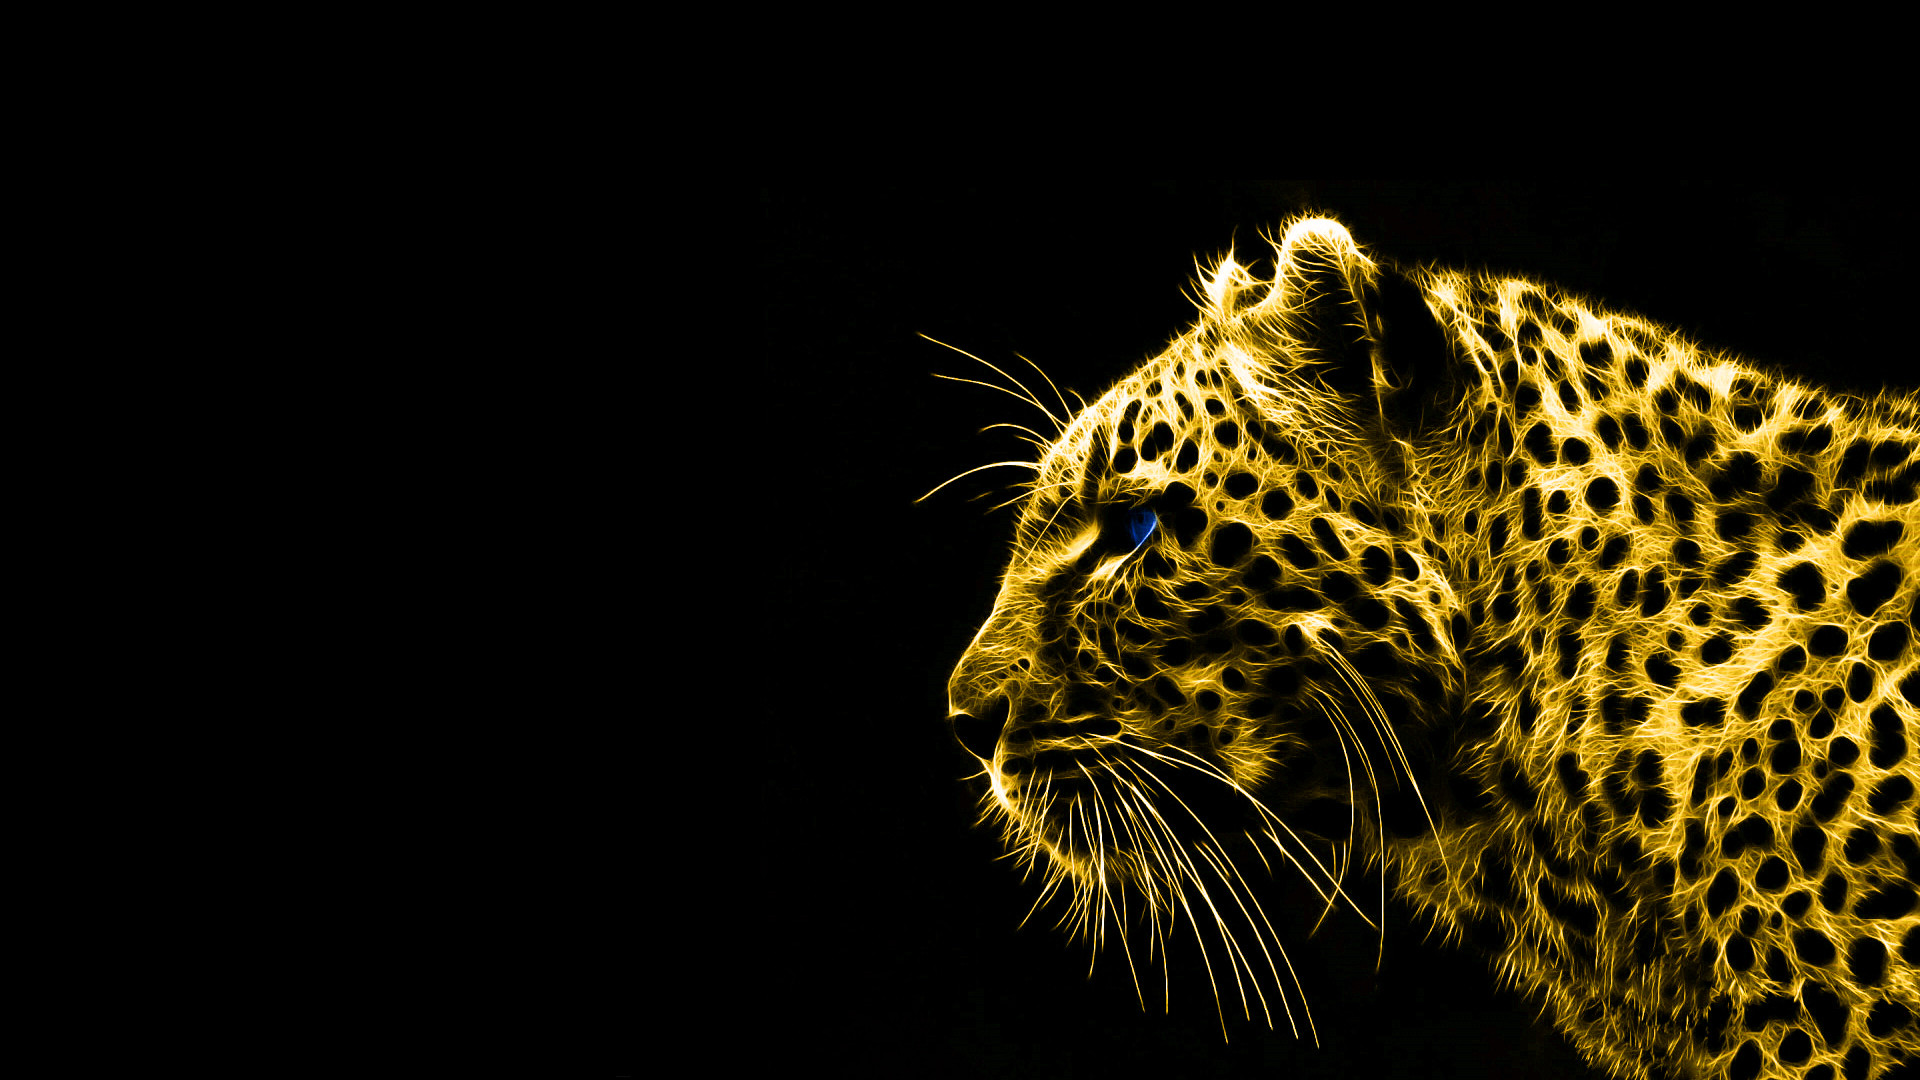 Black Gold Wallpaper Mobile Black And Gold Animals 49632 Hd